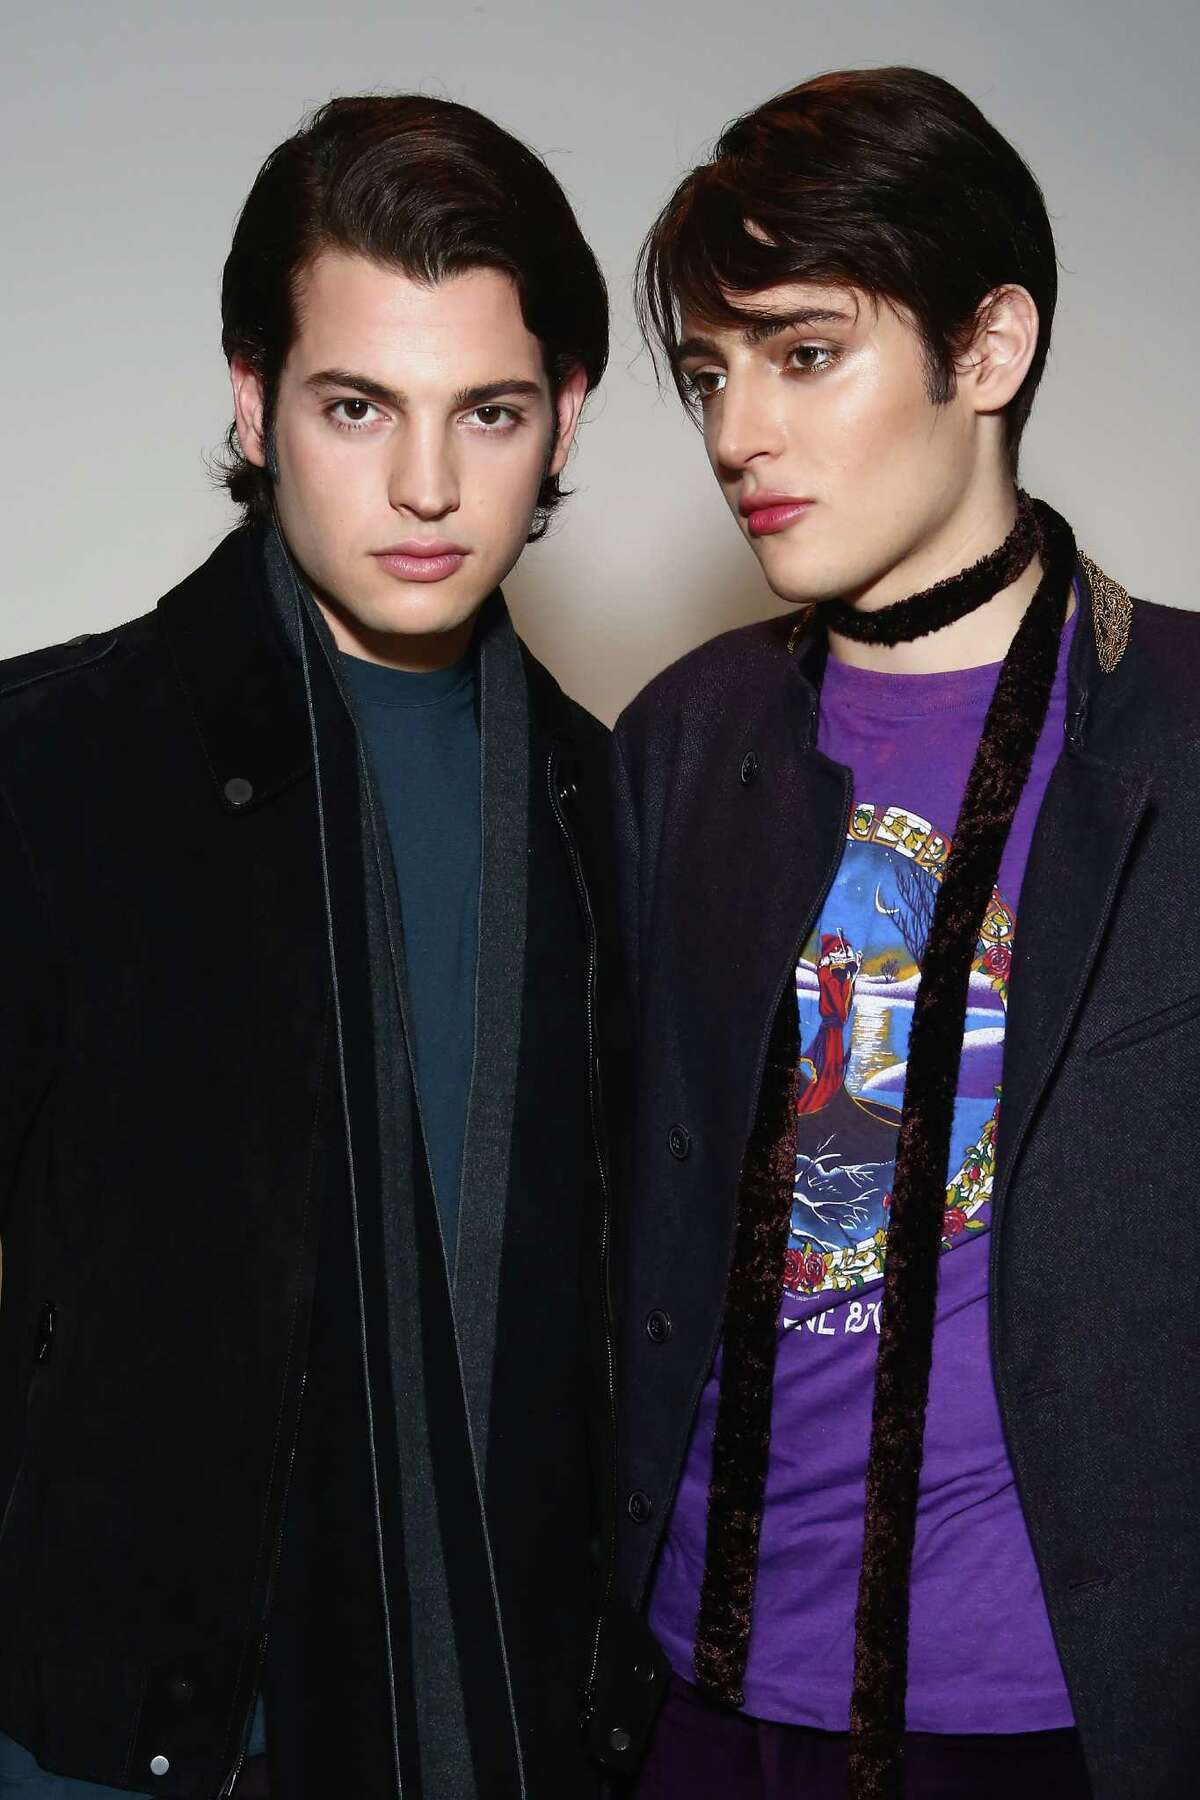 Peter and Harry Brant debut their new M.A.C. Cosmetics collection at M.A.C. Pro Store on March 9, 2016 in New York City. Peter Brant Jr. was held at JFK airport on Wednesday, March 23, 2-16 after an incident with a Port Authority officer.